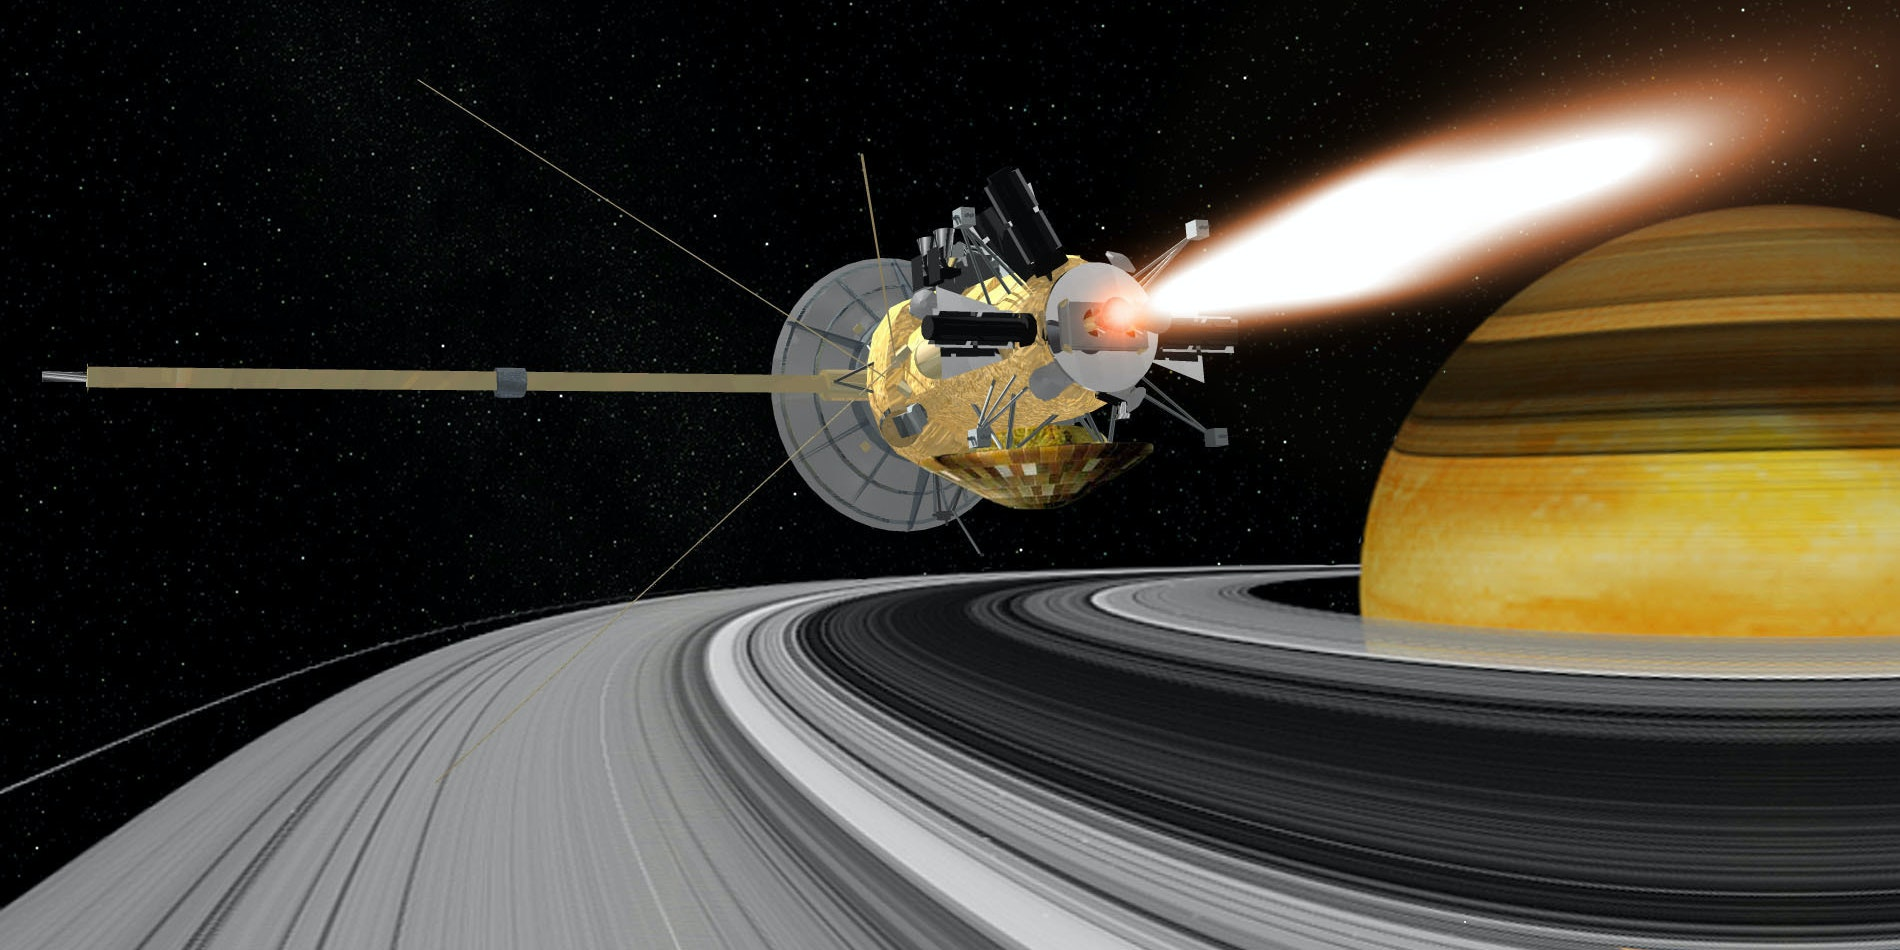 An artist rendering of the Cassini spacecraft around the rings of Saturn.